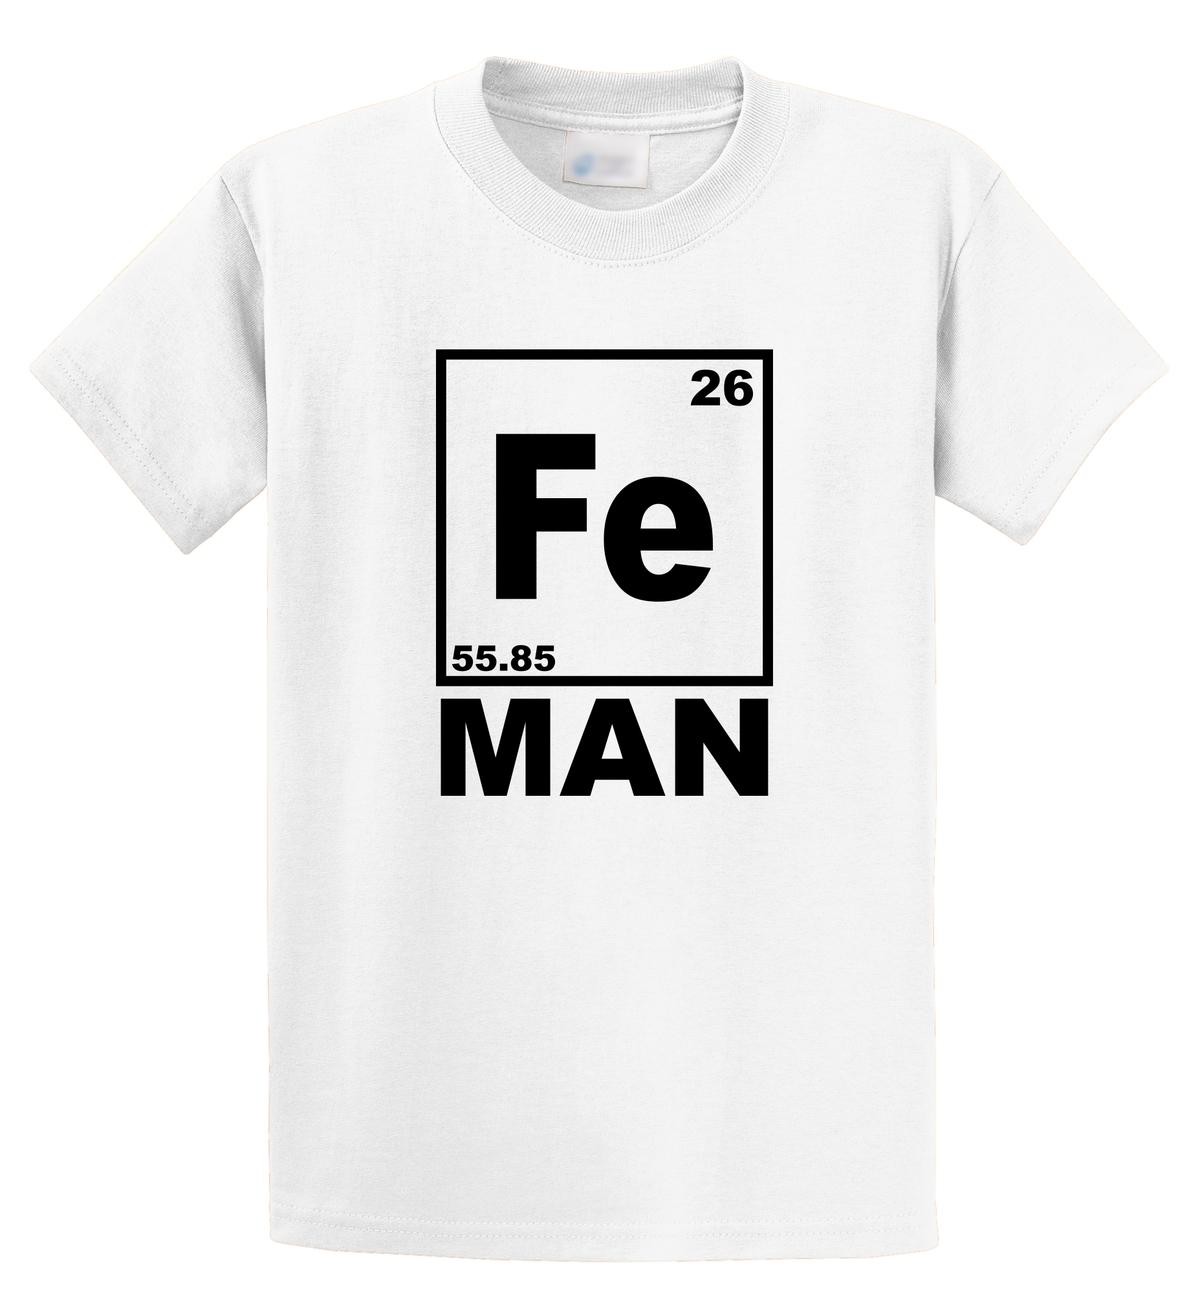 6403db65 Casual T Shirt Male Pattern Short O Neck Christmas Mens Fe Man Funny Iron  Chemistry Periodic Table Geek Nerd Shirt T Shirts Cool Designs Awesome T  Shirts ...